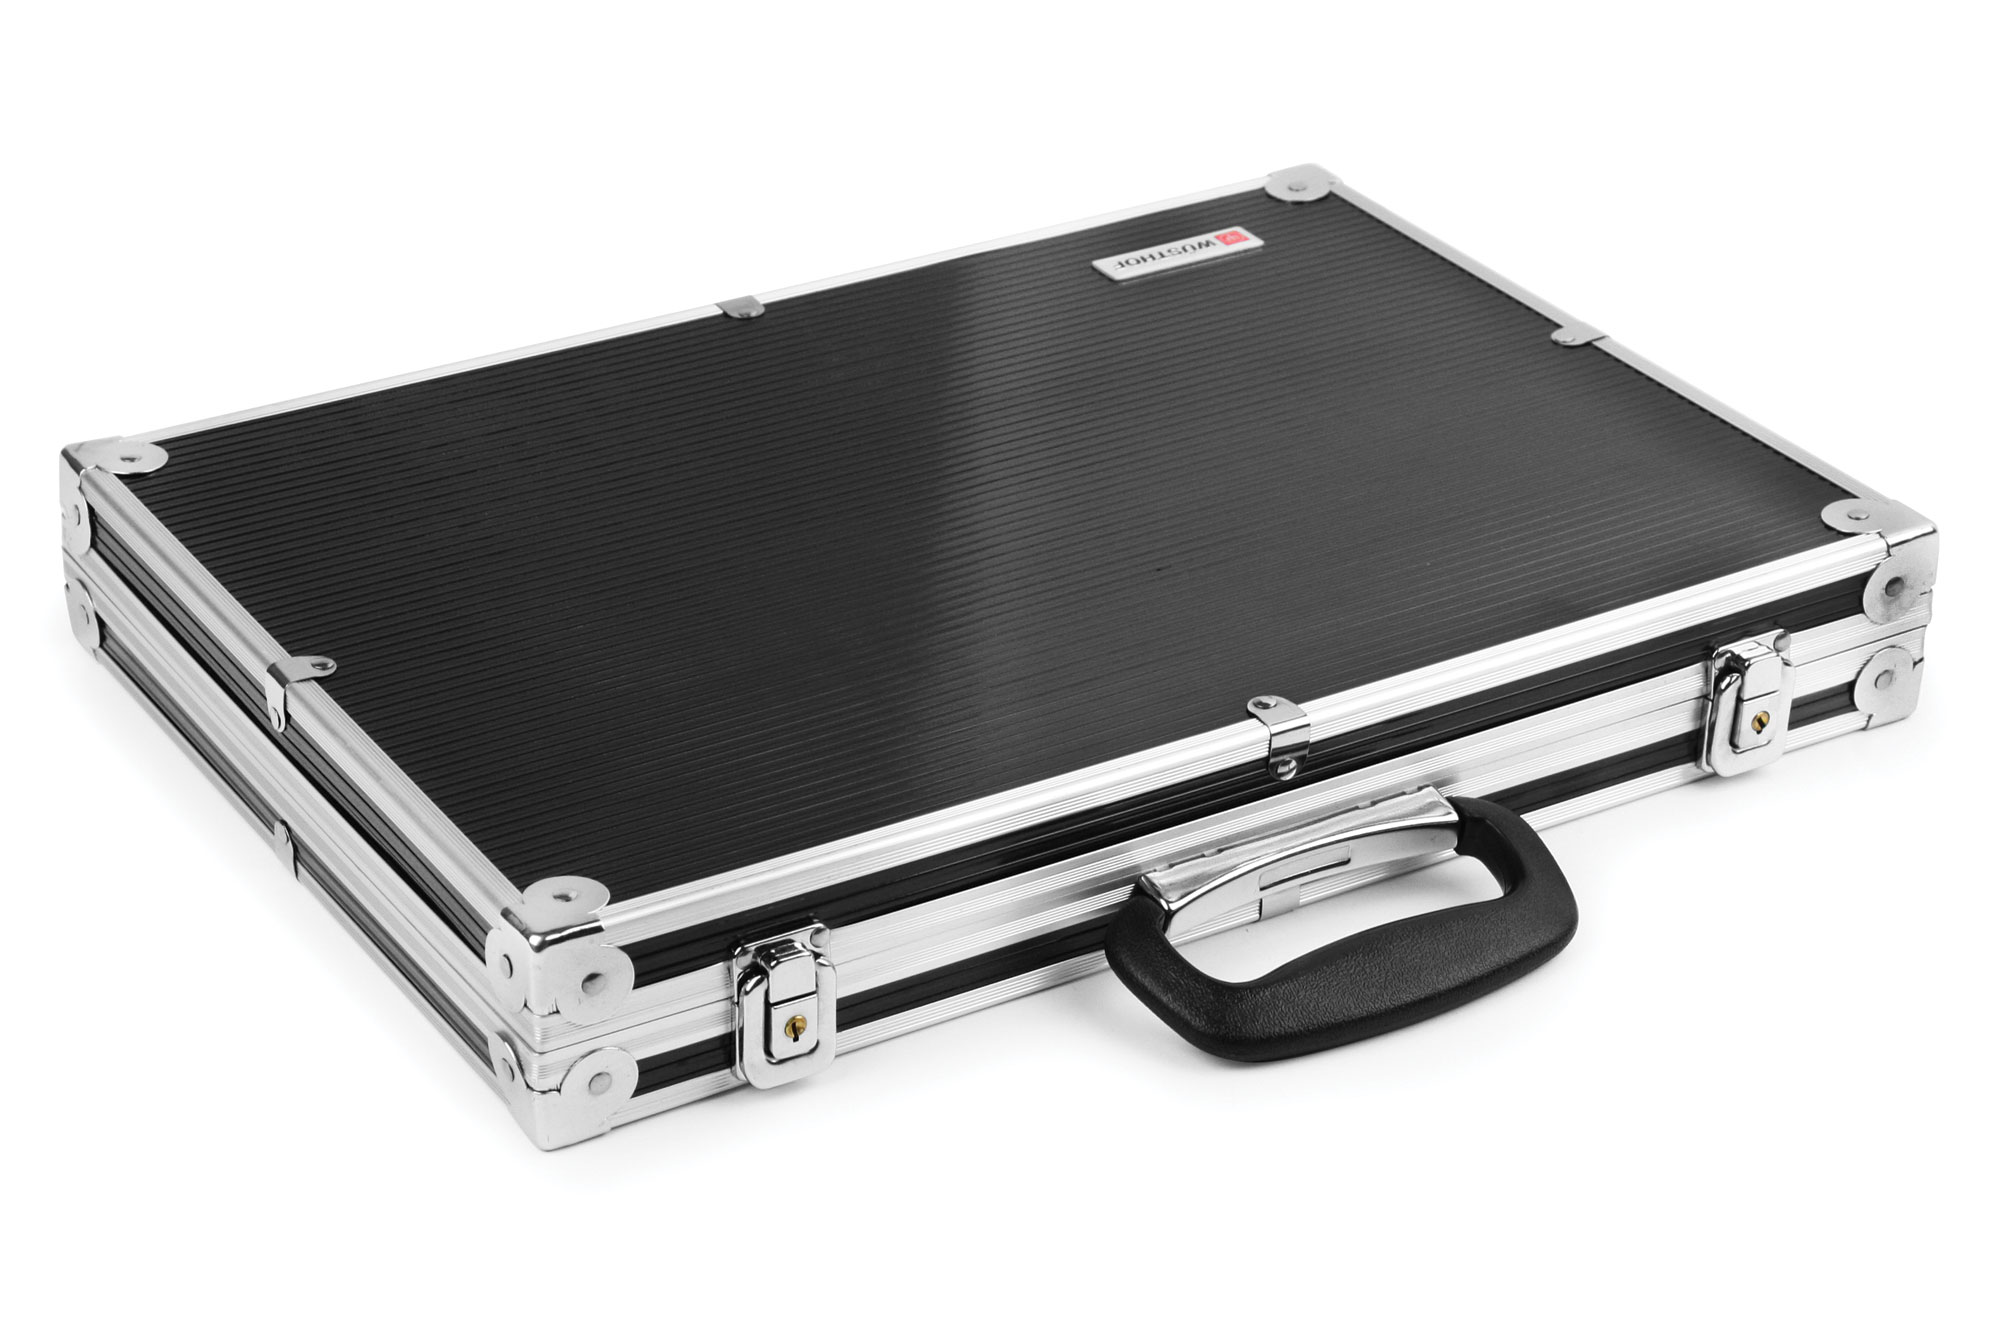 Wusthof Magnetic Chef S Knife Attache Case Cutlery And More